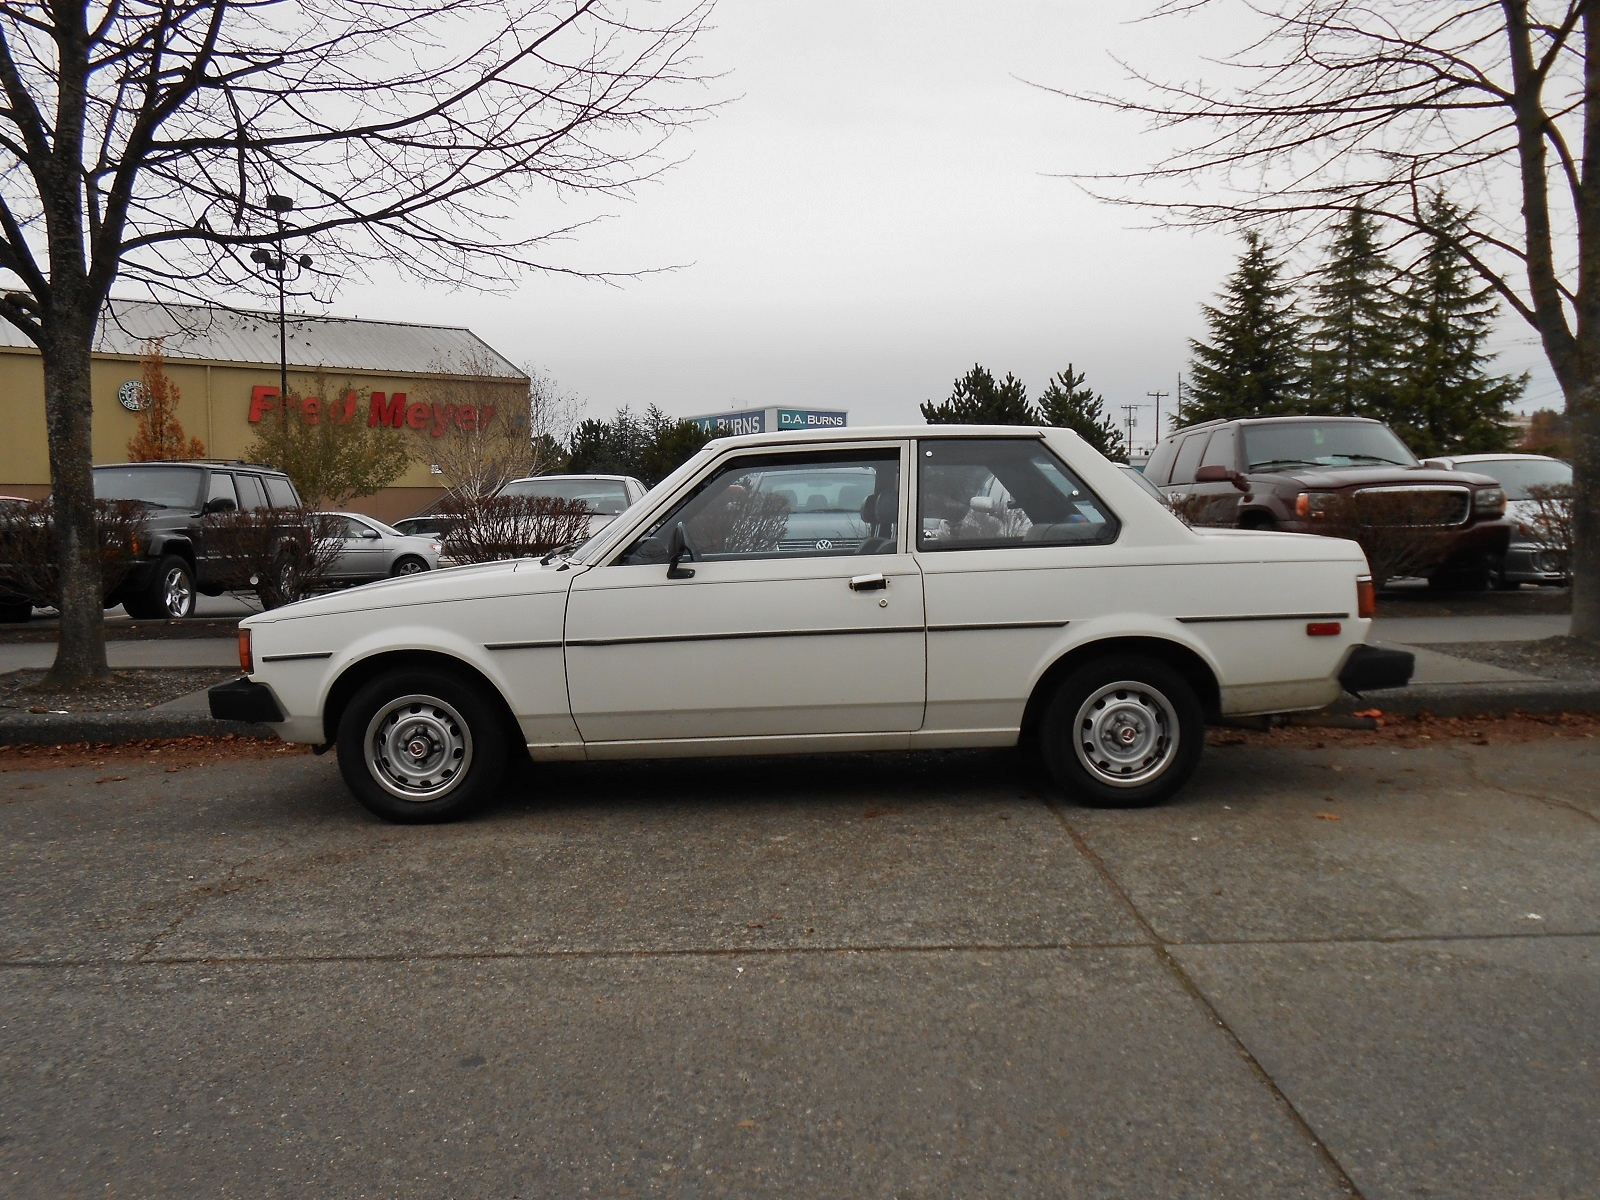 Seattle S Parked Cars 1981 Toyota Corolla